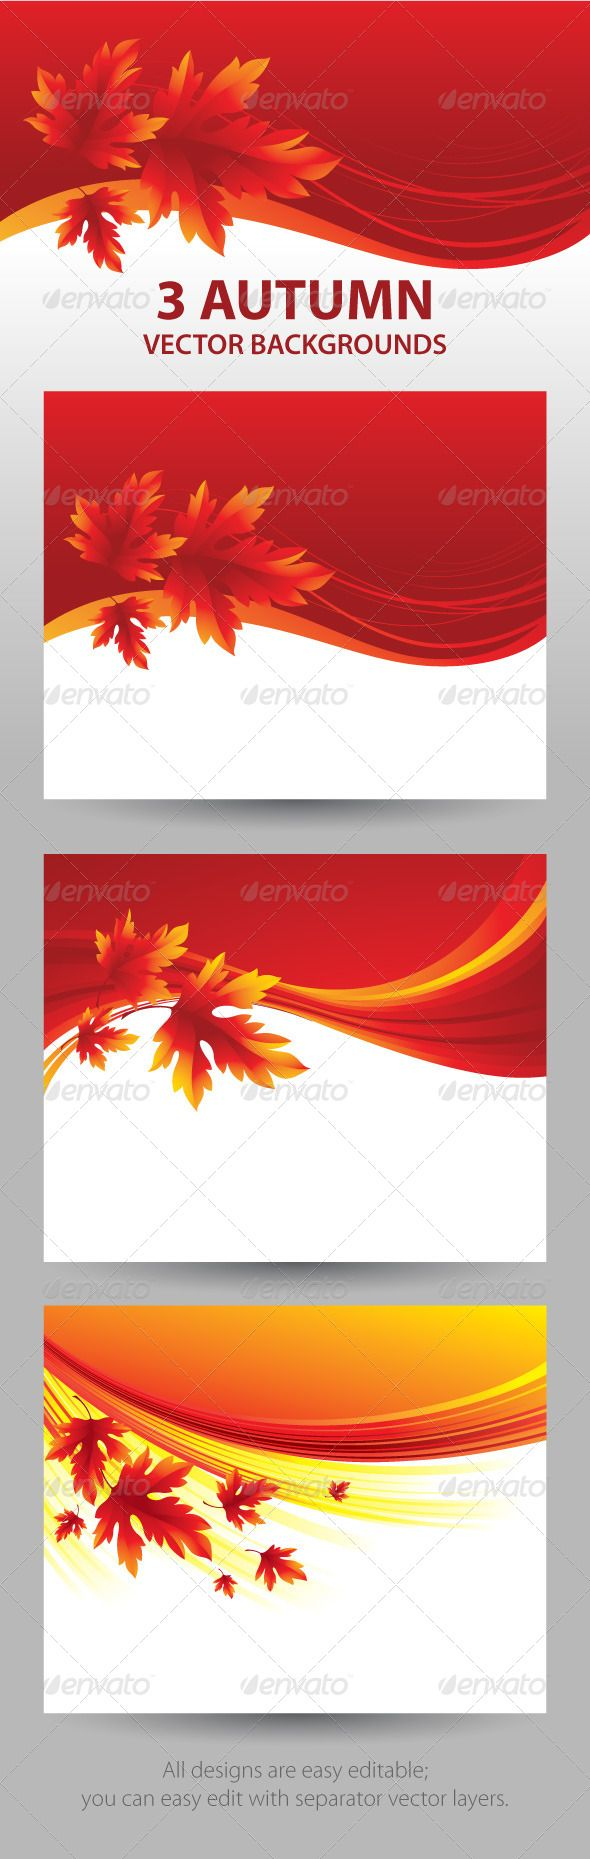 Fall Leafs Abstract Background Fall Leafs Tree Illustration Christmas Tree Background